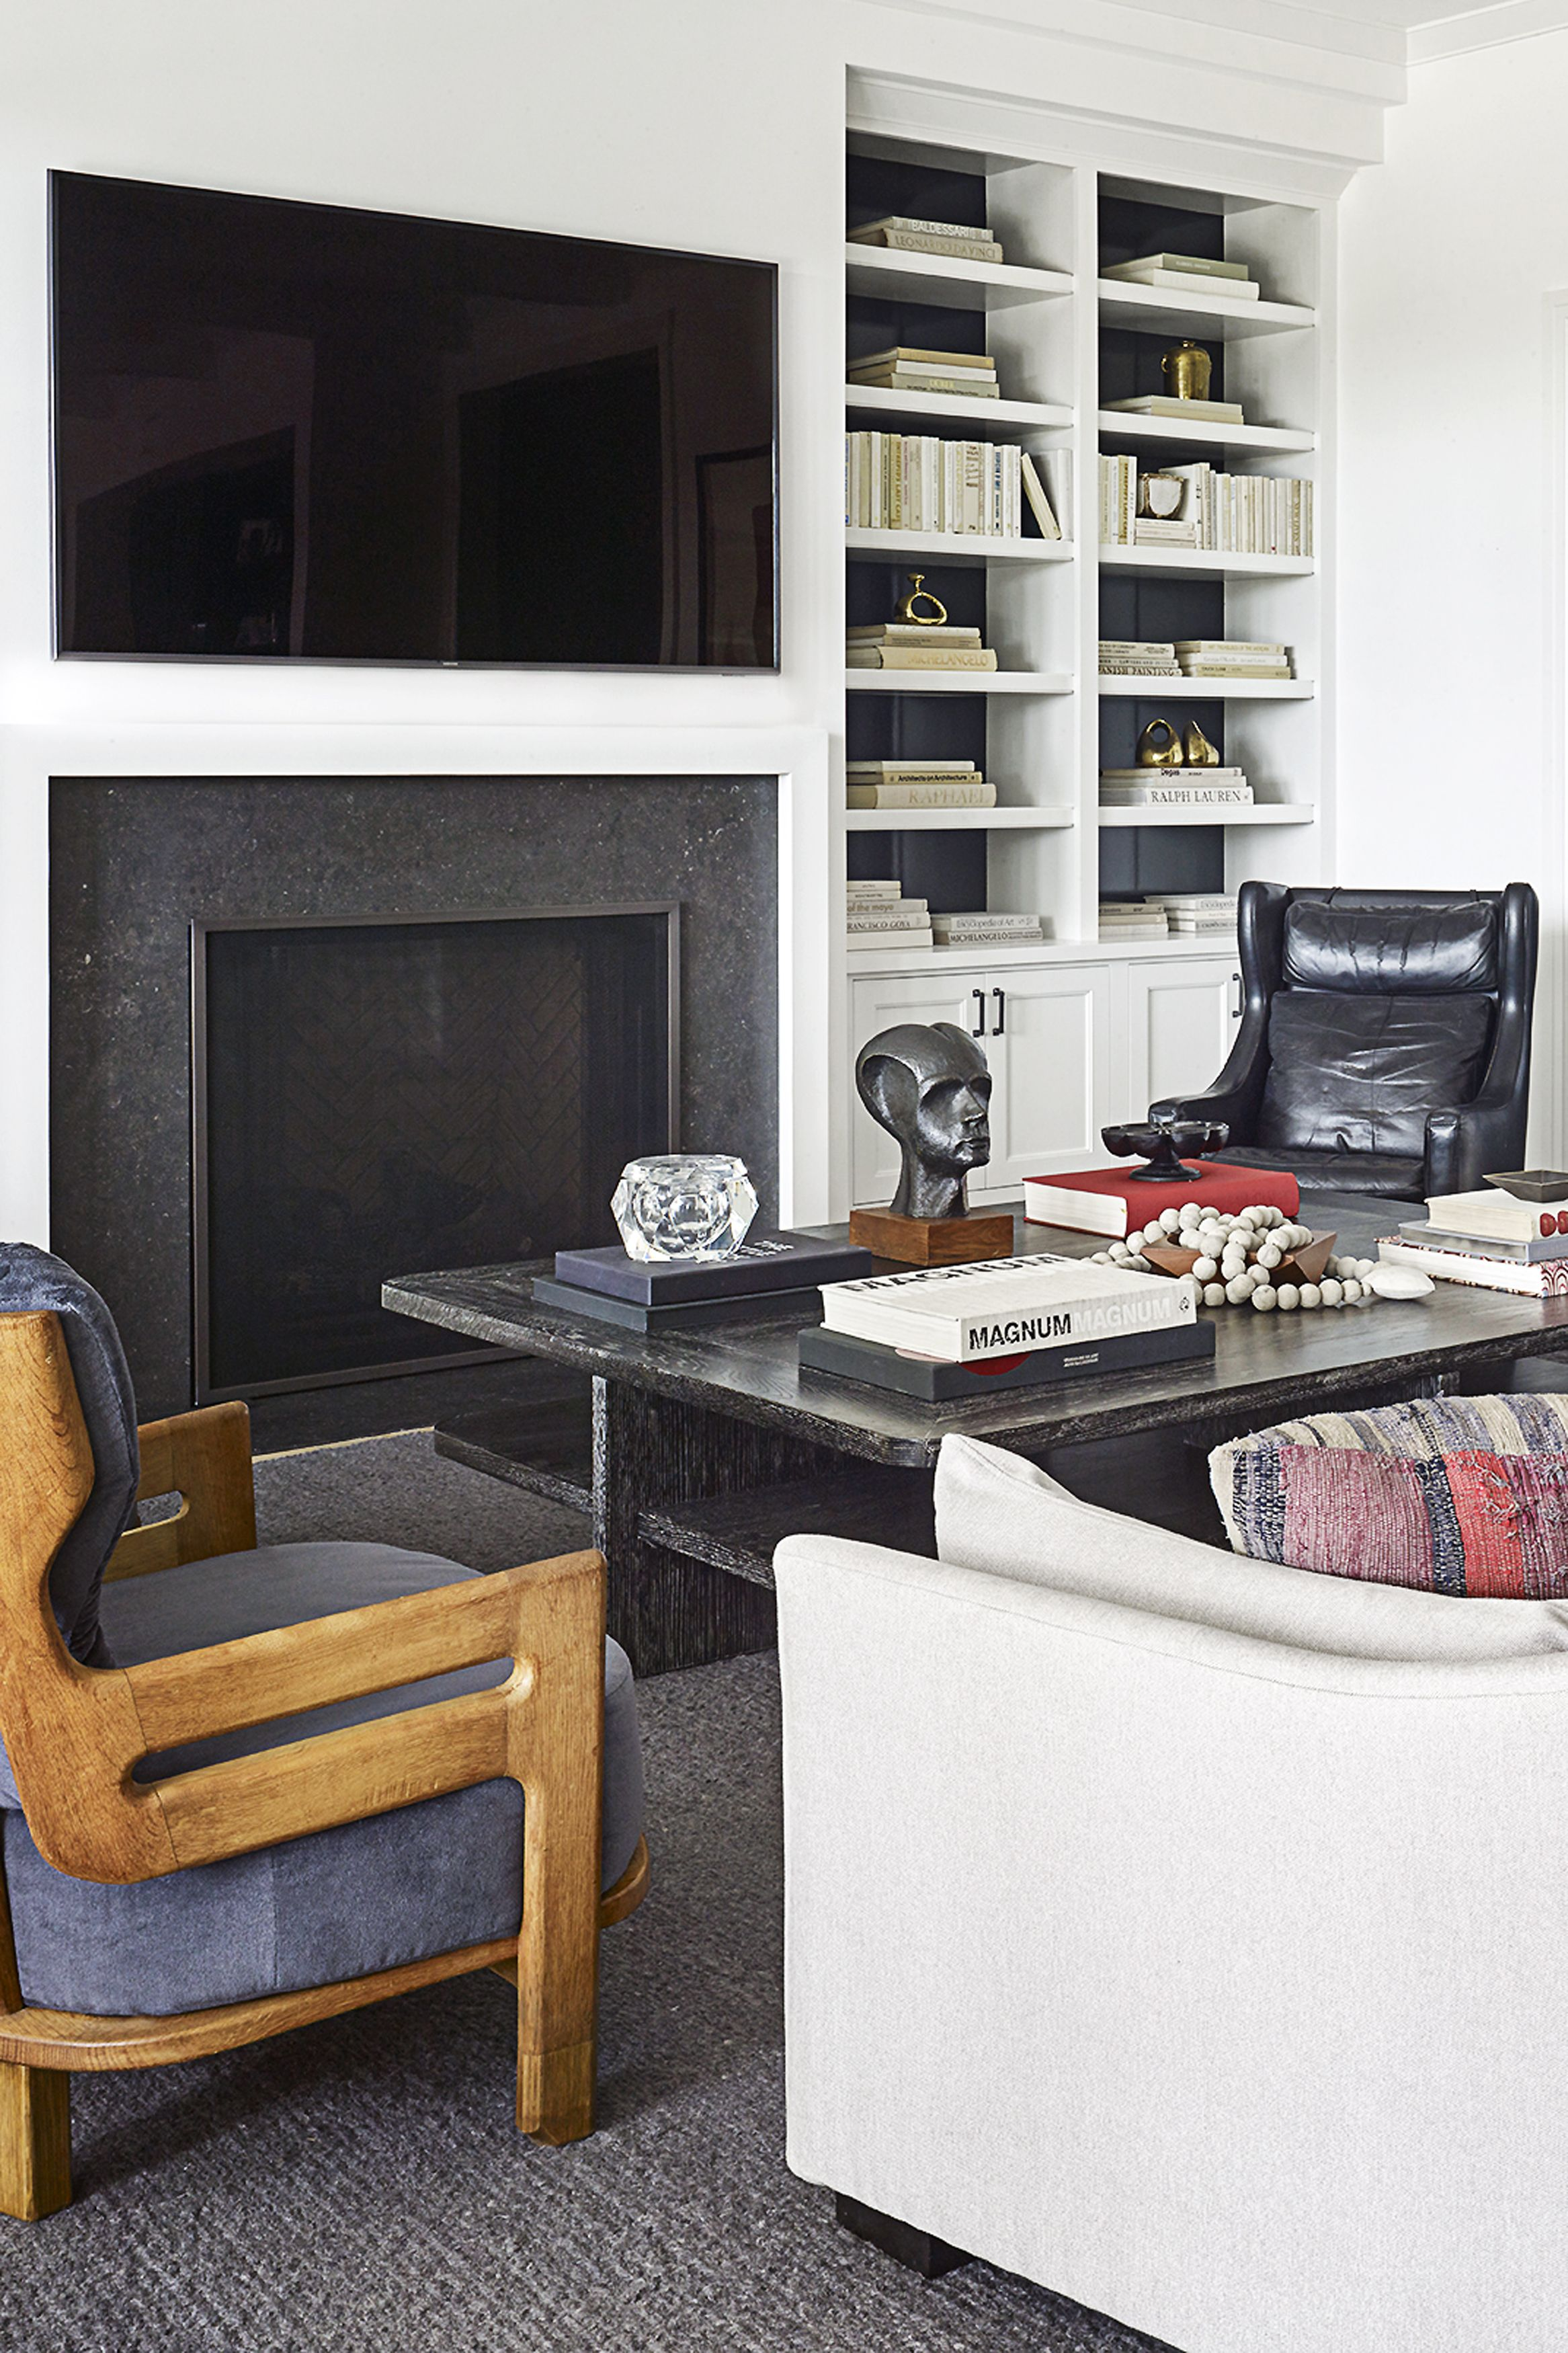 Cool Ideas For Decorating A Living Room Decor